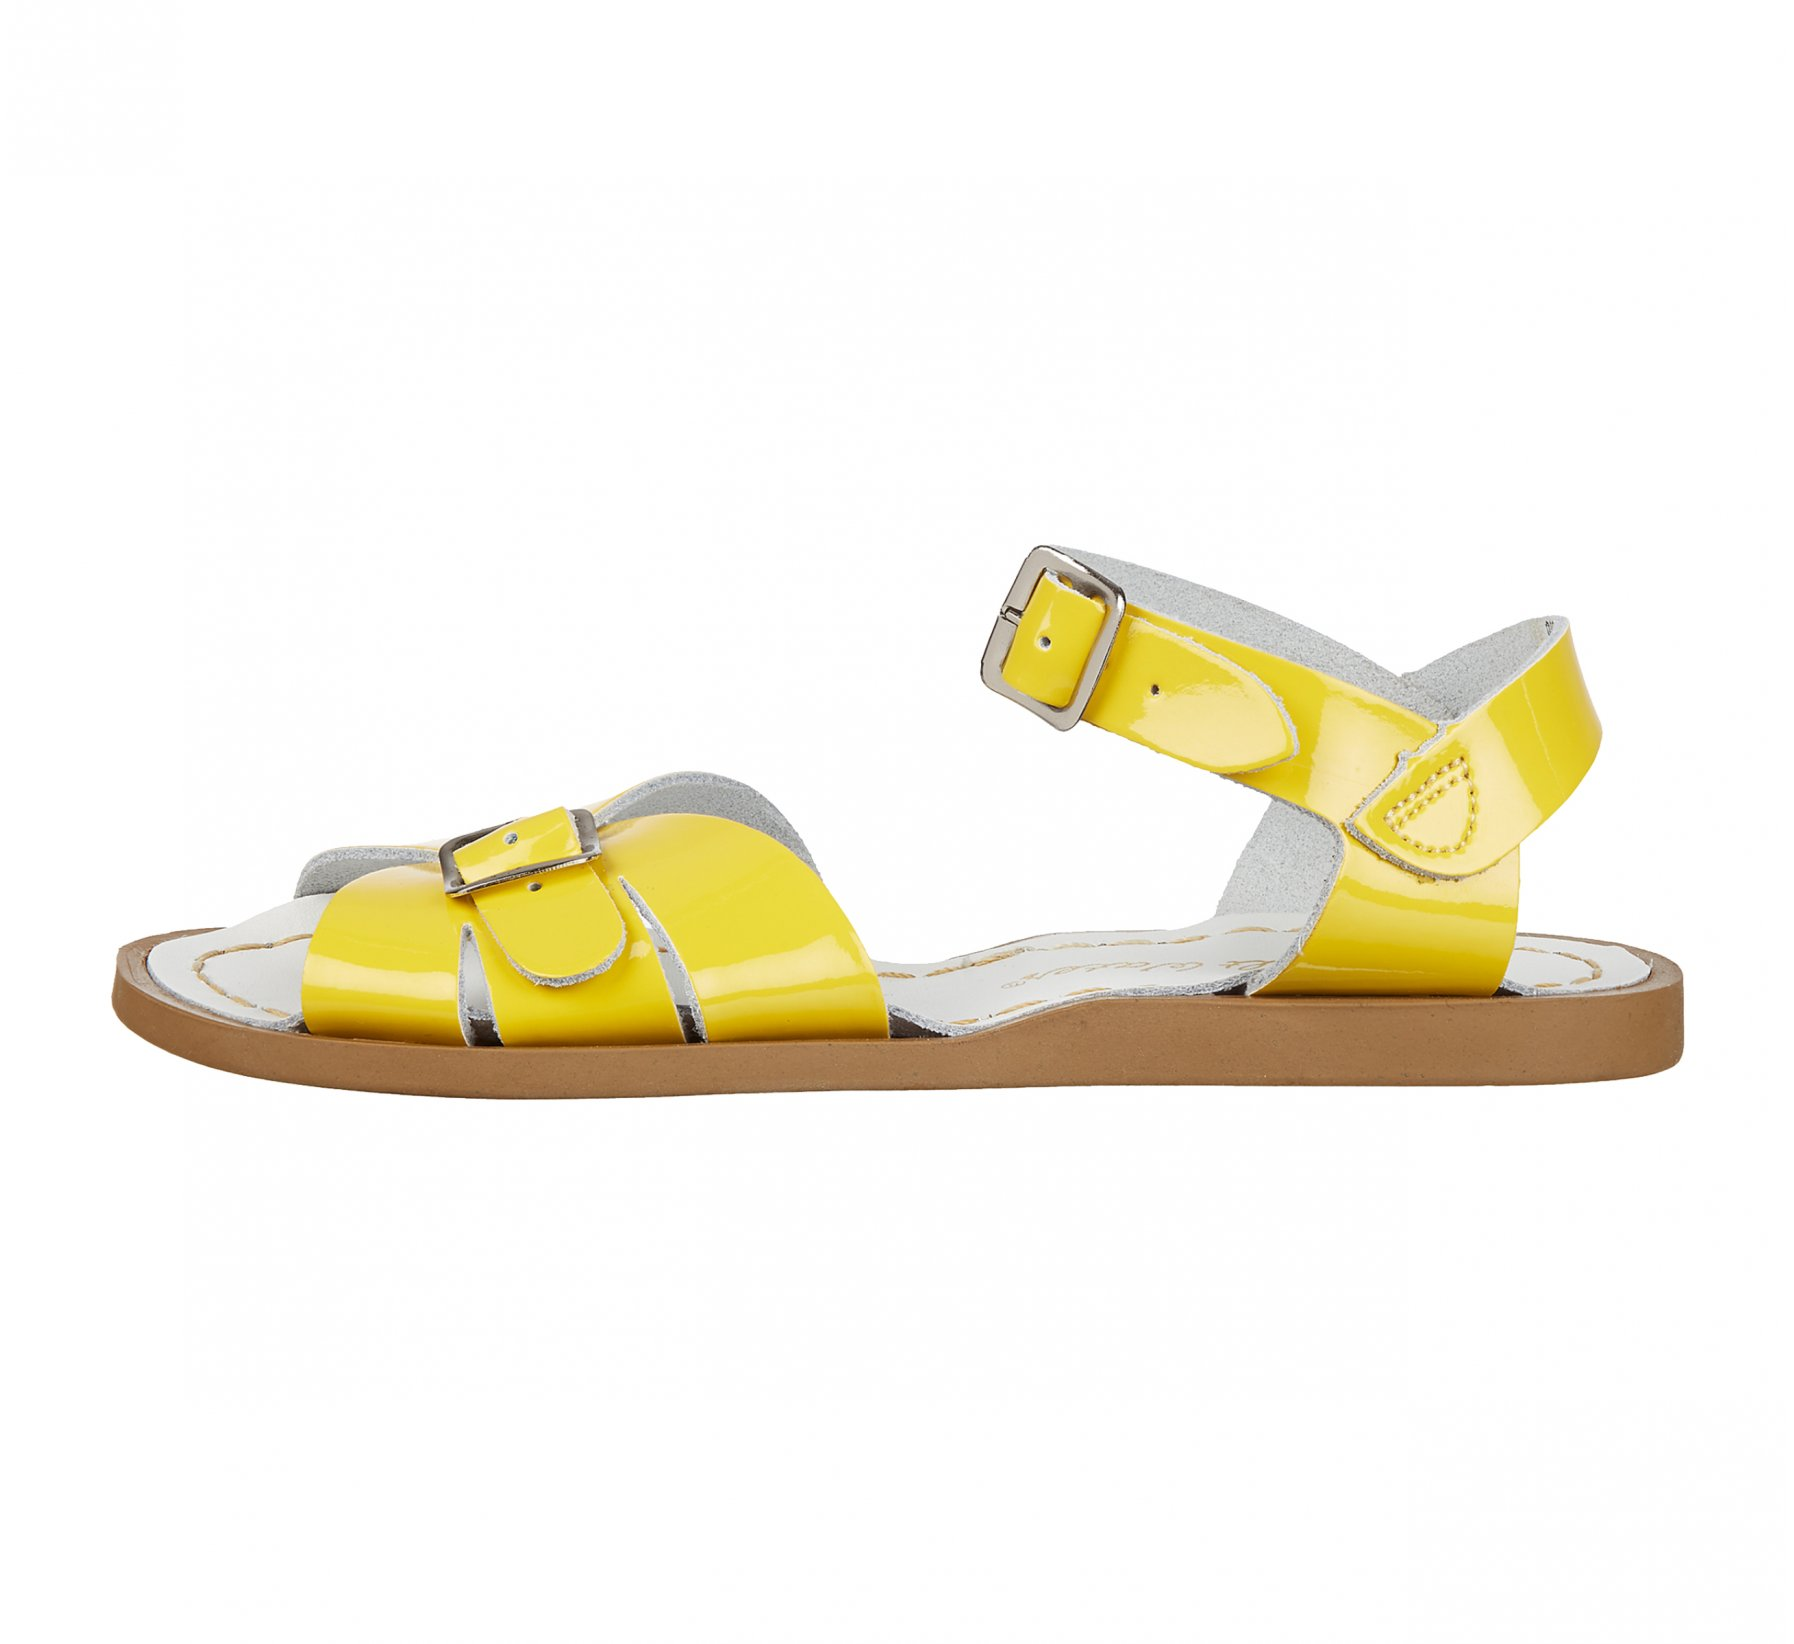 Classic Shiny Yellow - Salt Water Sandals